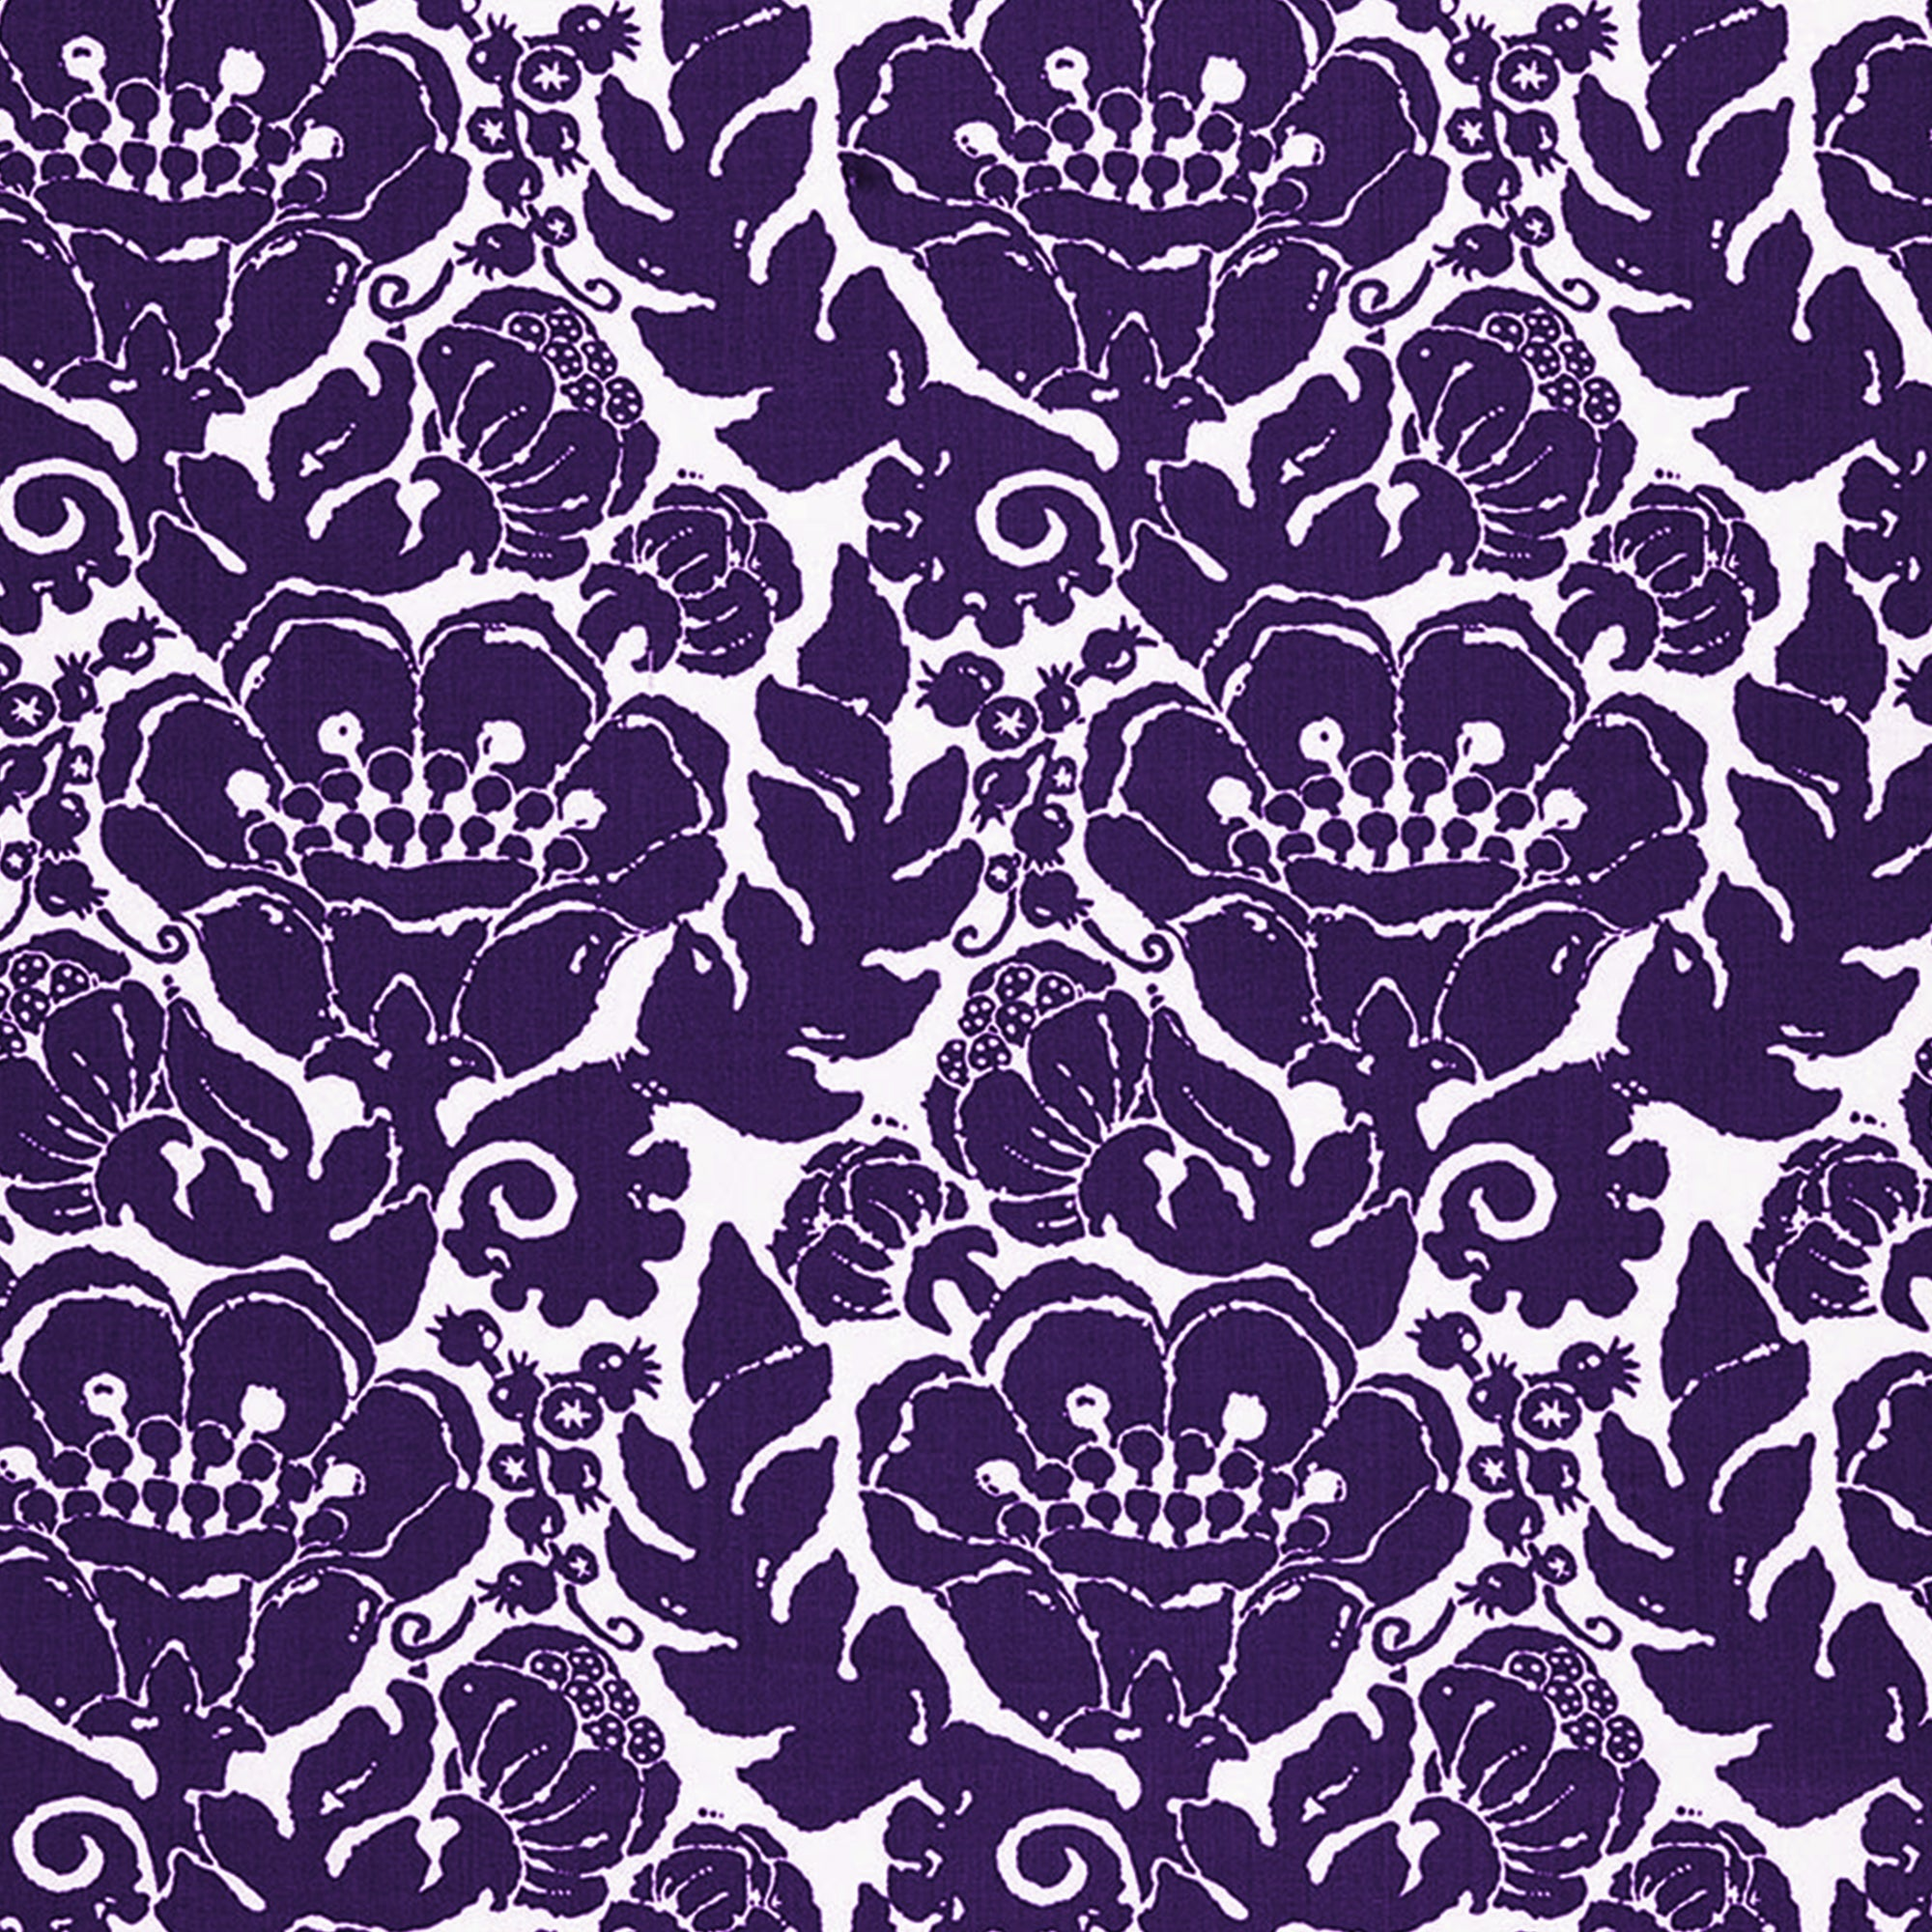 Trina Turk Louis Nui Print in Violet Outdoor Designer Fabric